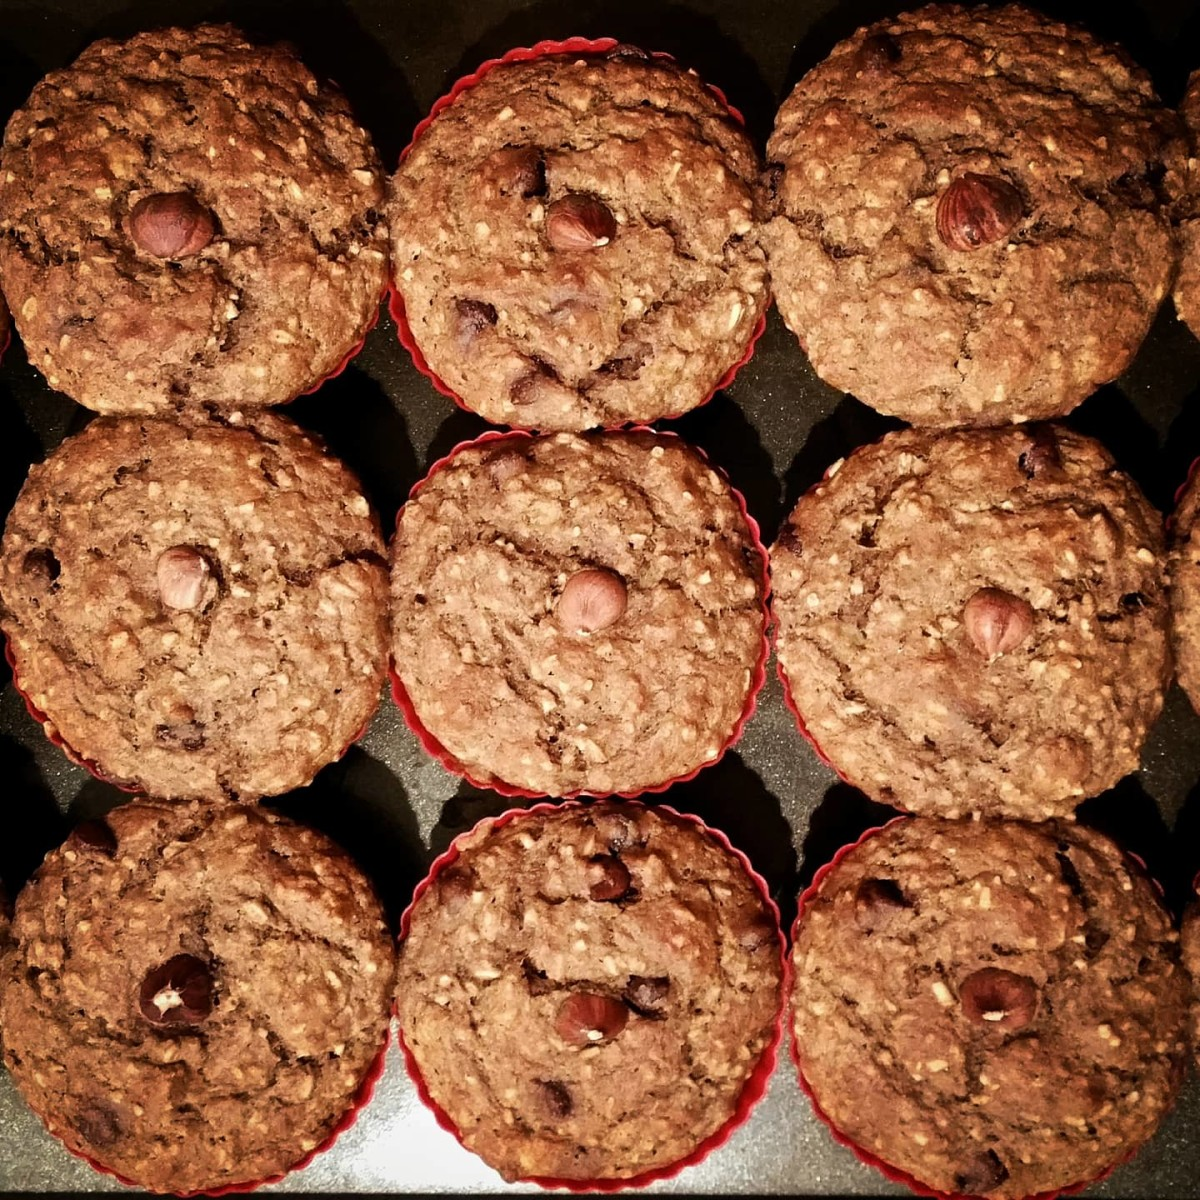 With the right ingredients, muffins can be healthy.